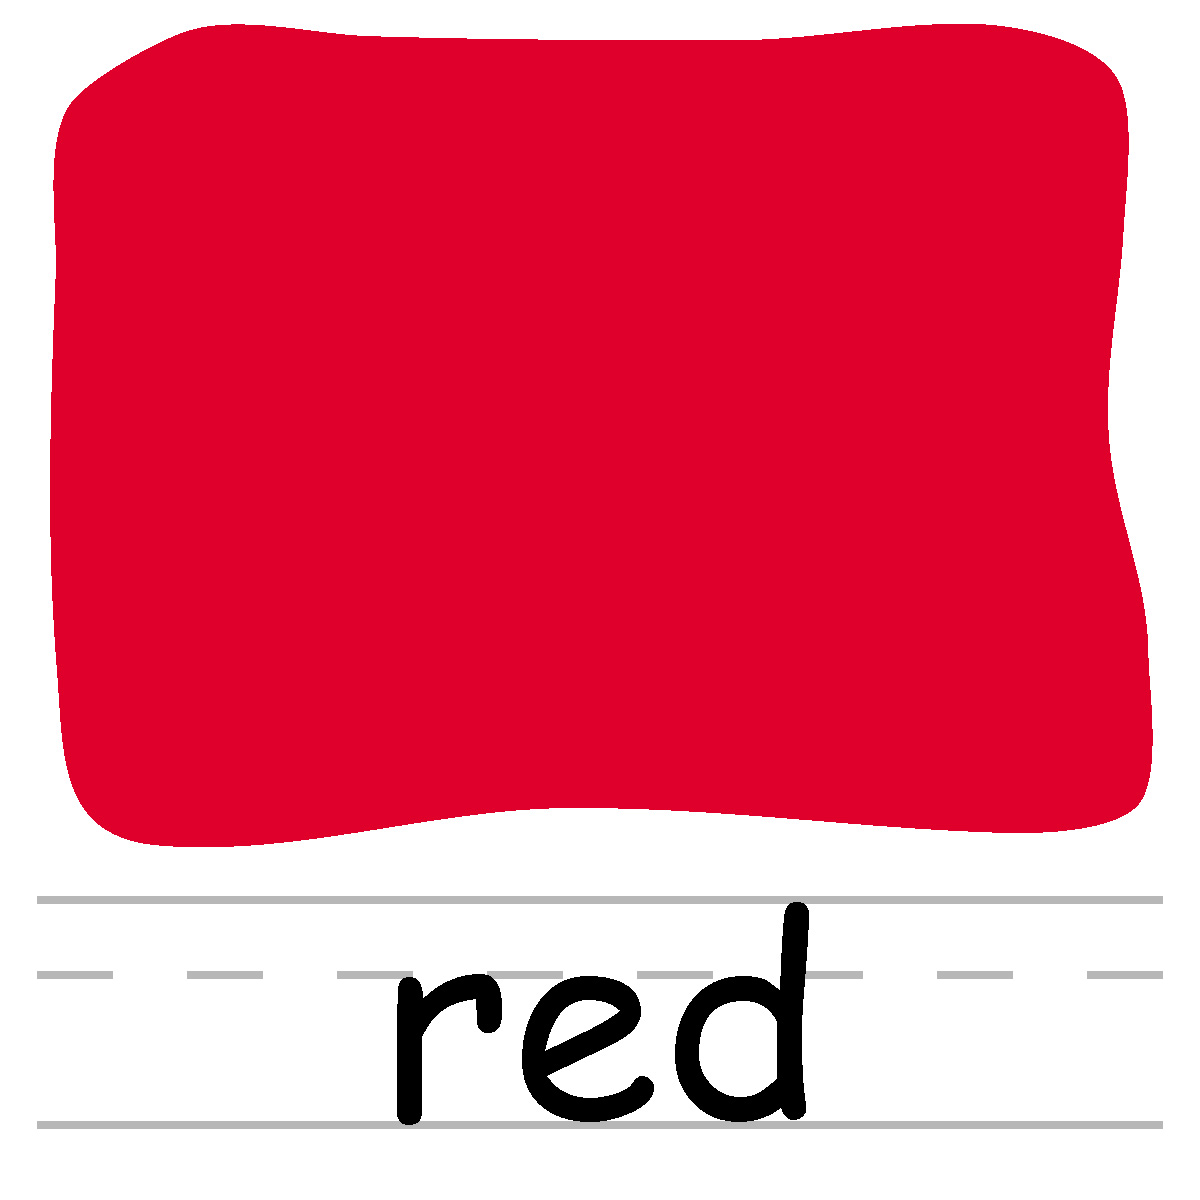 Red Crayon Clipart | Free download best Red Crayon Clipart on ...